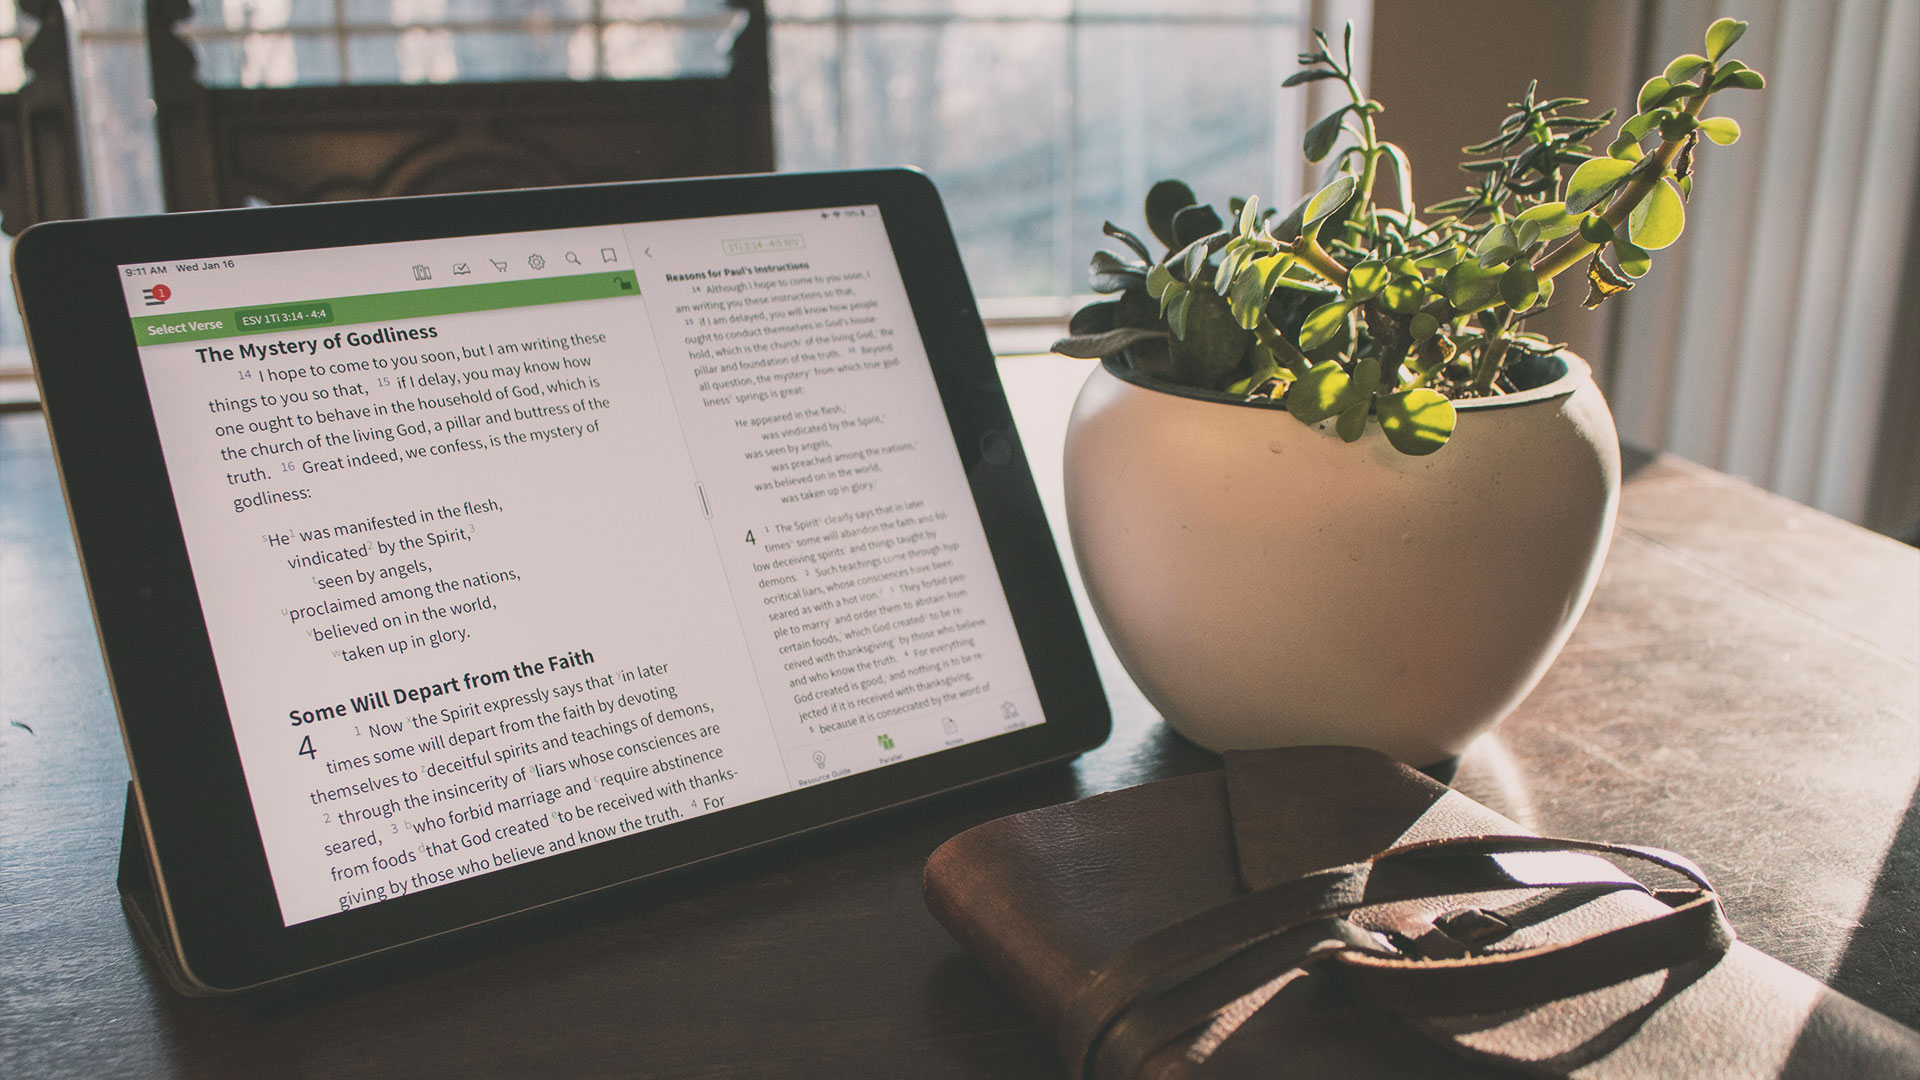 7 Step-by-Step Bible Study Methods - Olive Tree Blog